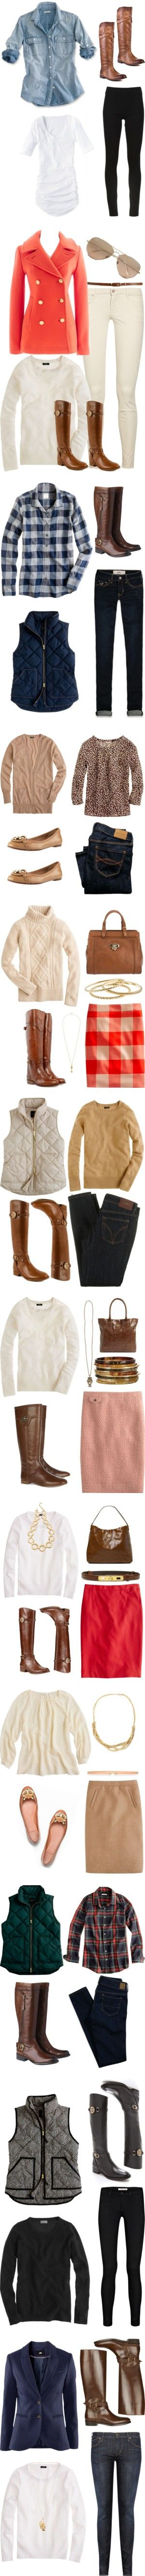 cute outfits for the cold season.